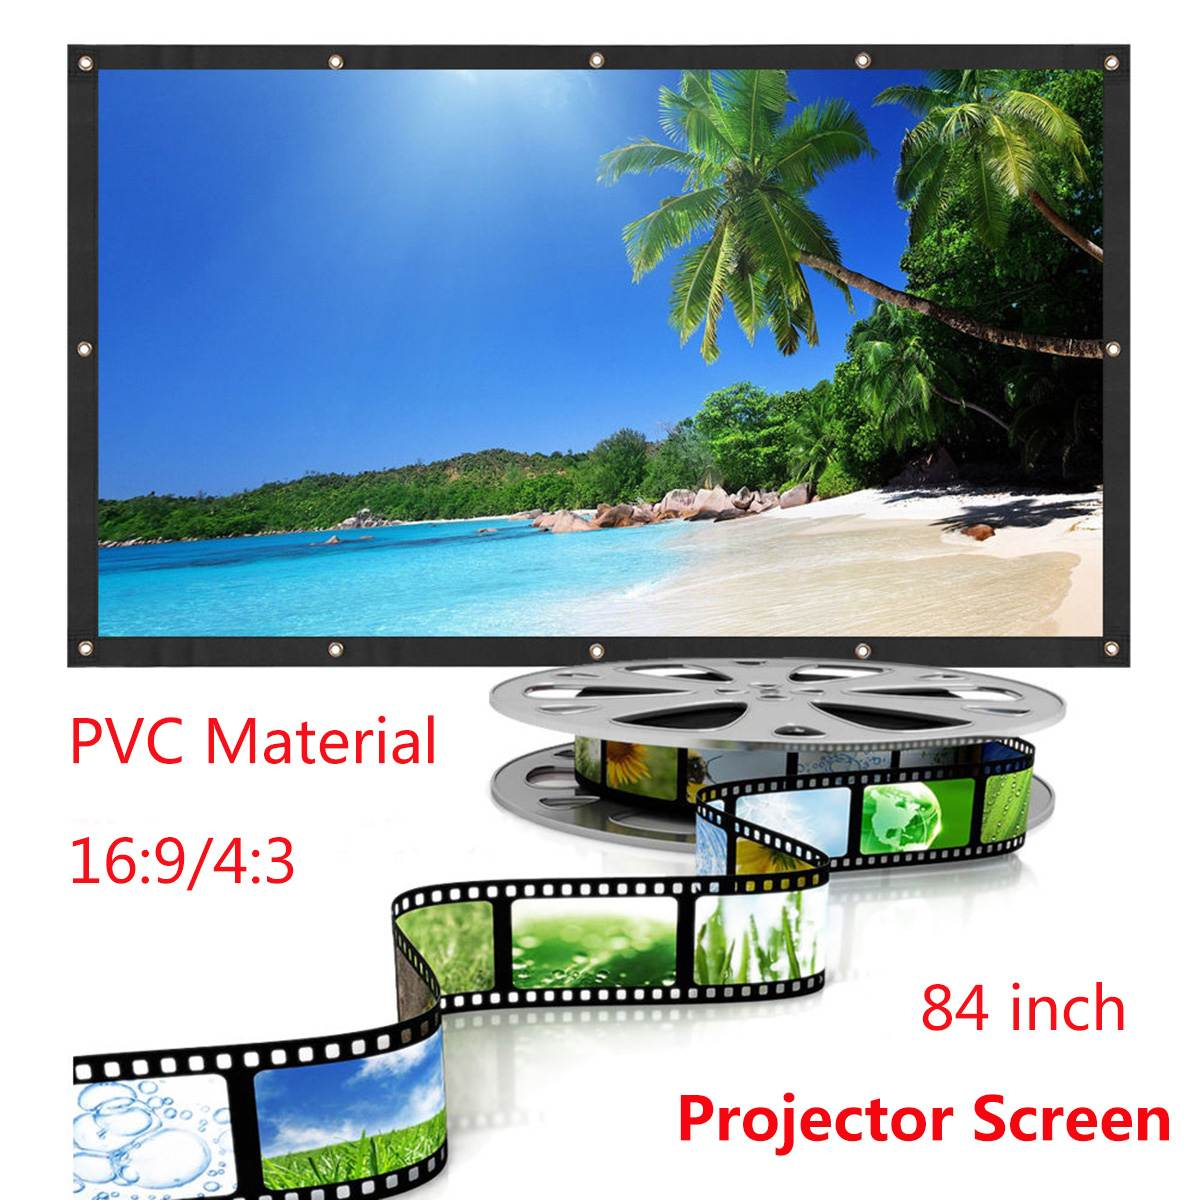 Rolled Up 84/100 Inch Projector Screen 16:9 HD Portable Home Cinema Outdoor Projection LED Projector Screen For Home TheaterRolled Up 84/100 Inch Projector Screen 16:9 HD Portable Home Cinema Outdoor Projection LED Projector Screen For Home Theater